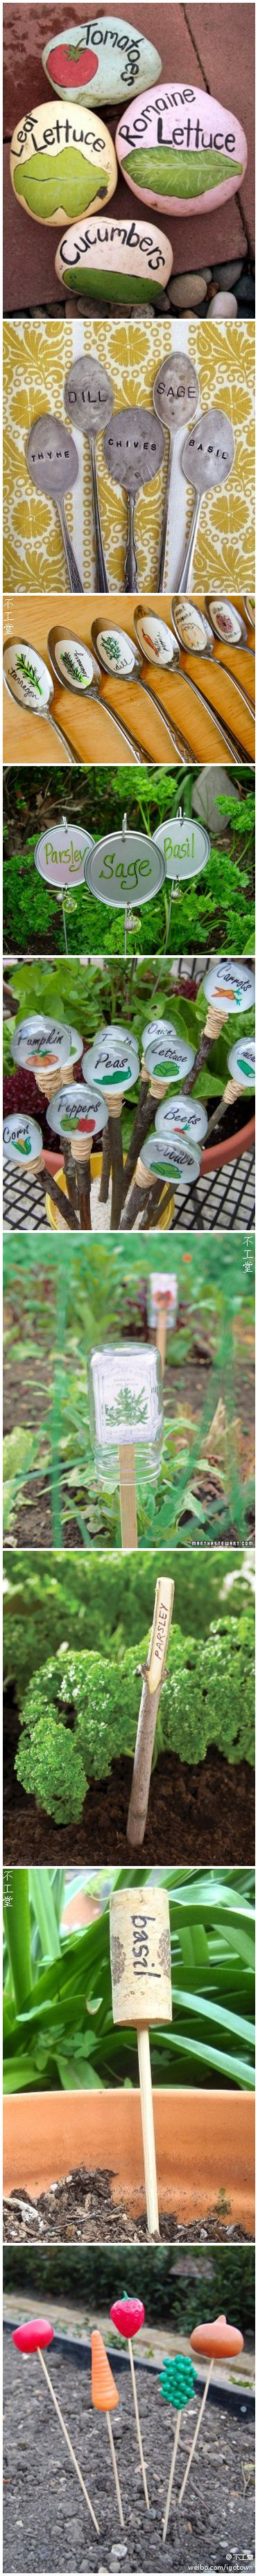 What a cute idea!! Garden markers